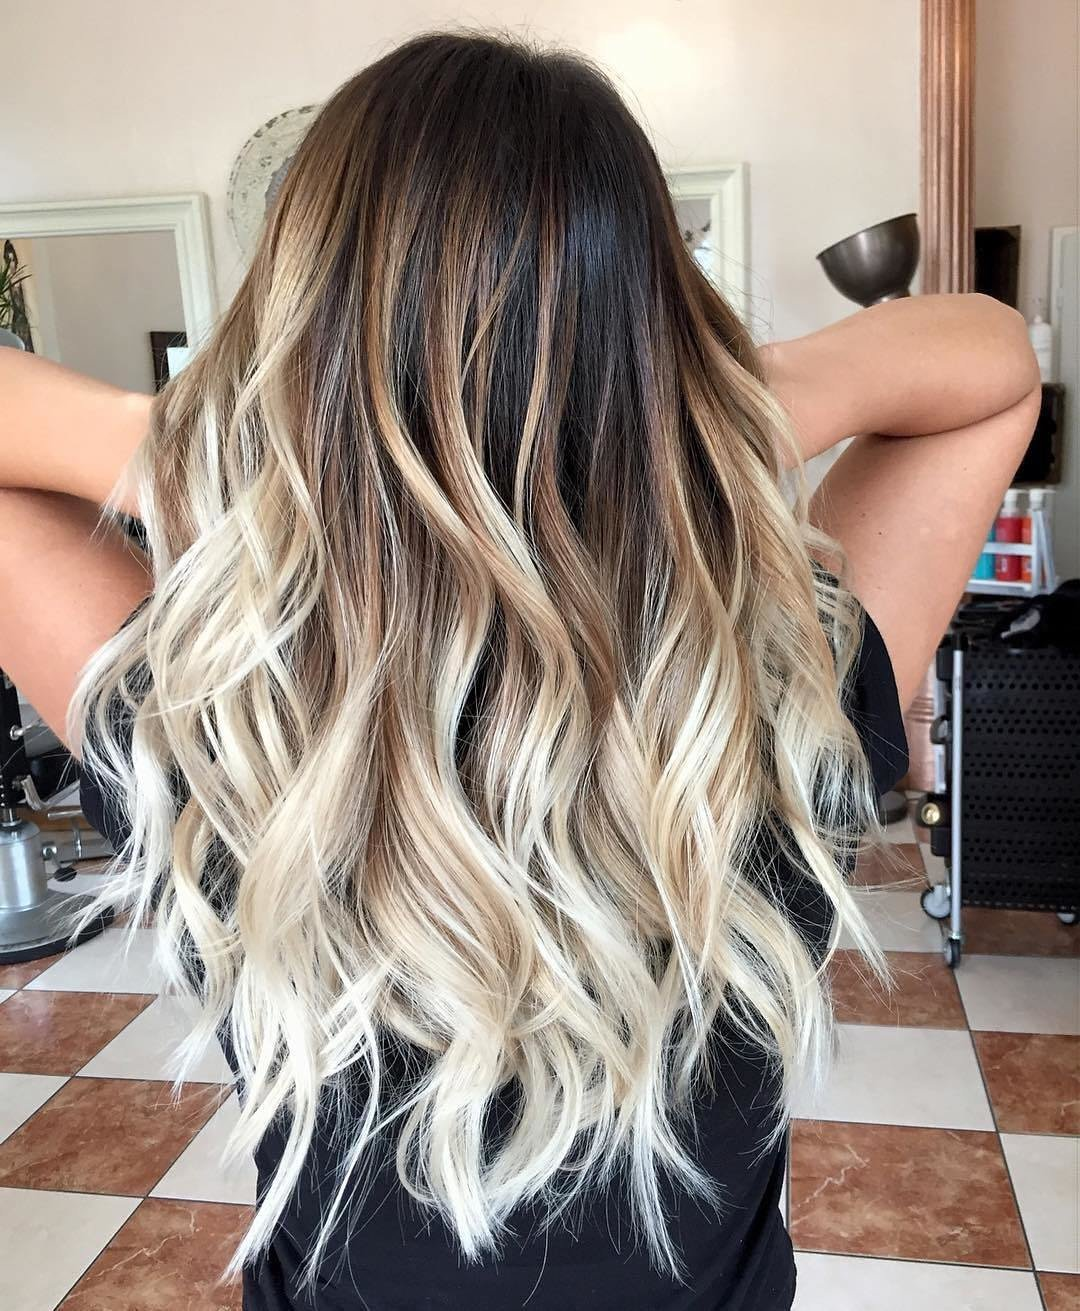 The Best 10 Medium Length Hair Color Ideas 2019 Pictures